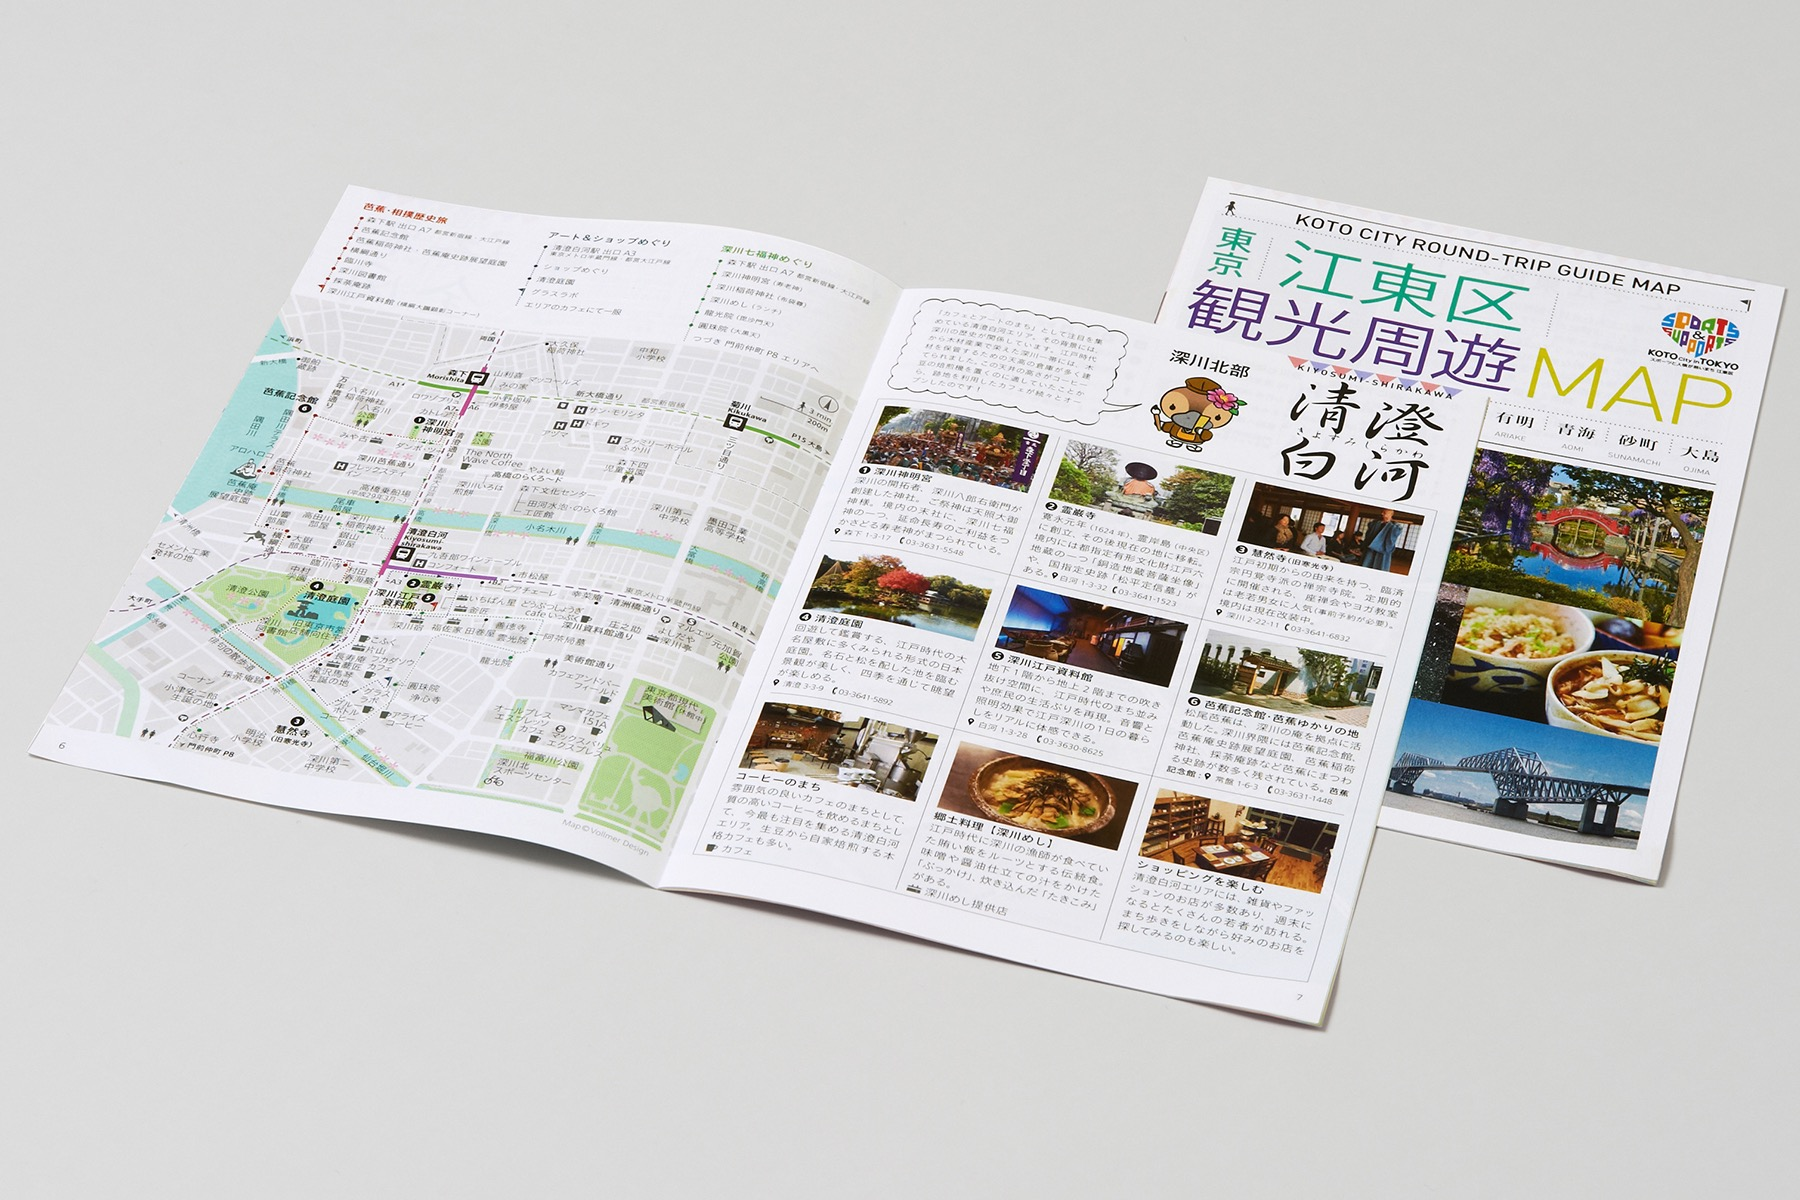 Koto City ROUND-TRIP GUIDE MAP Pages